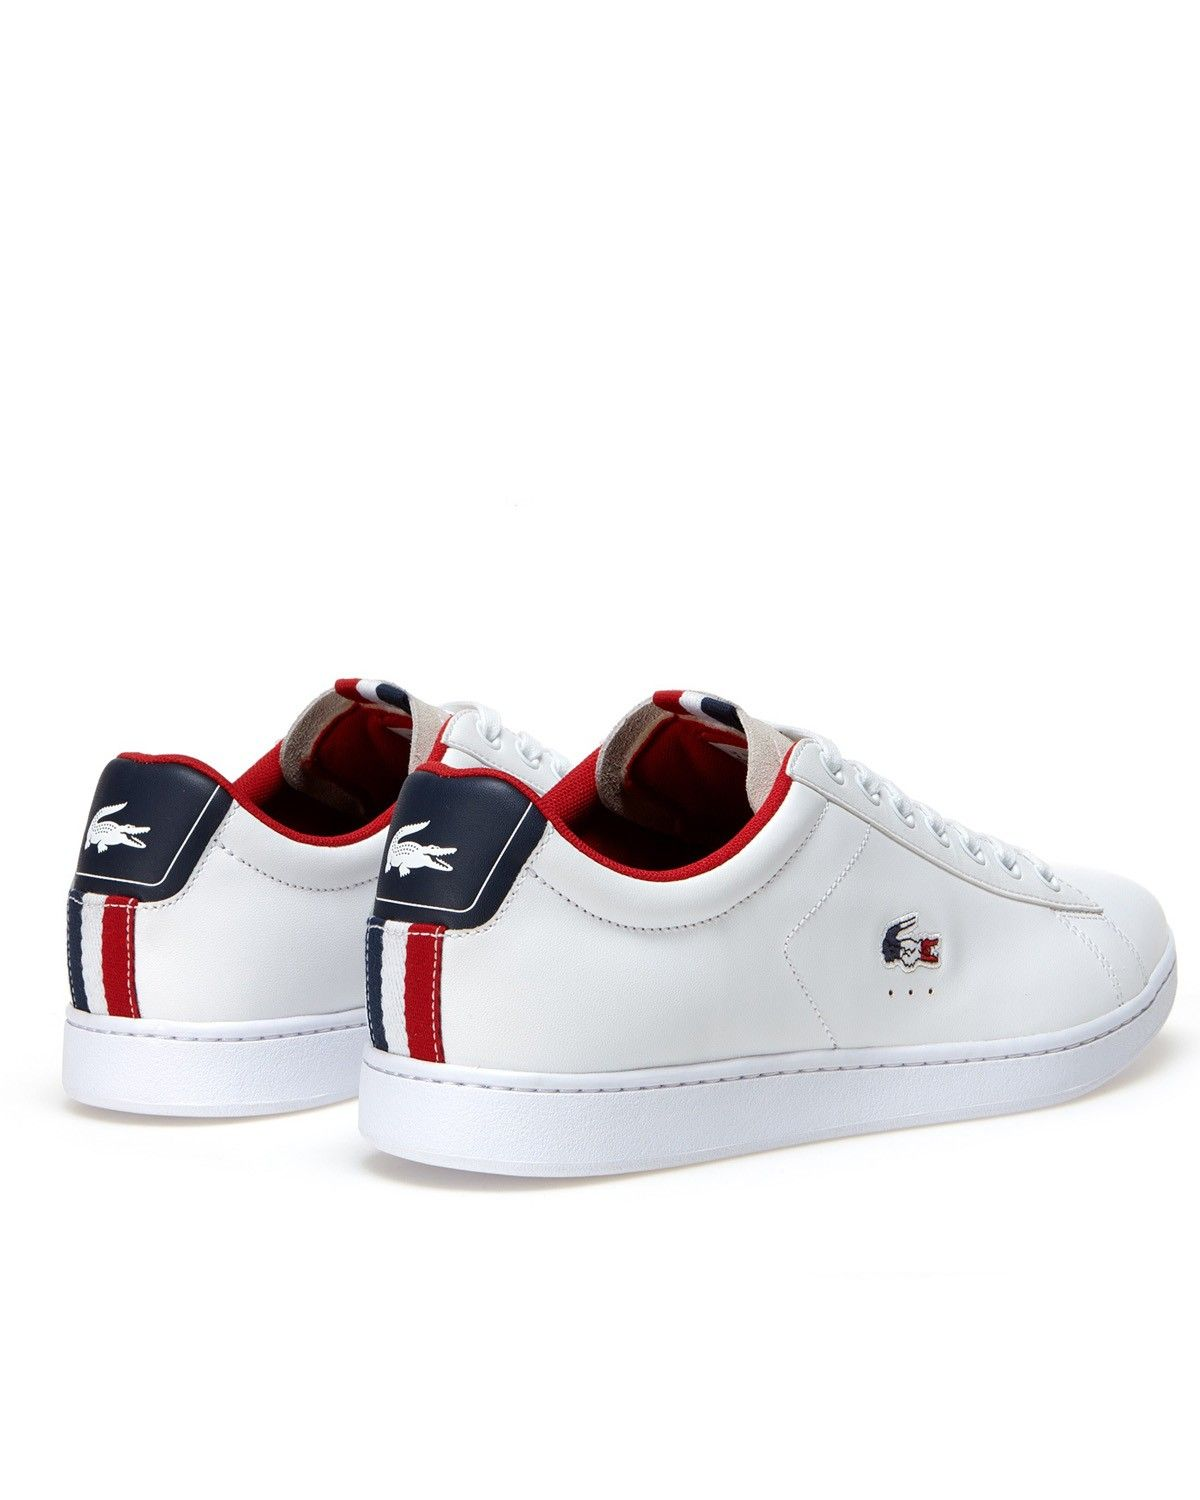 White Lacoste Shoes Carnaby Evo Lacoste Shoes Sneakers Men Fashion Lacoste Sneakers